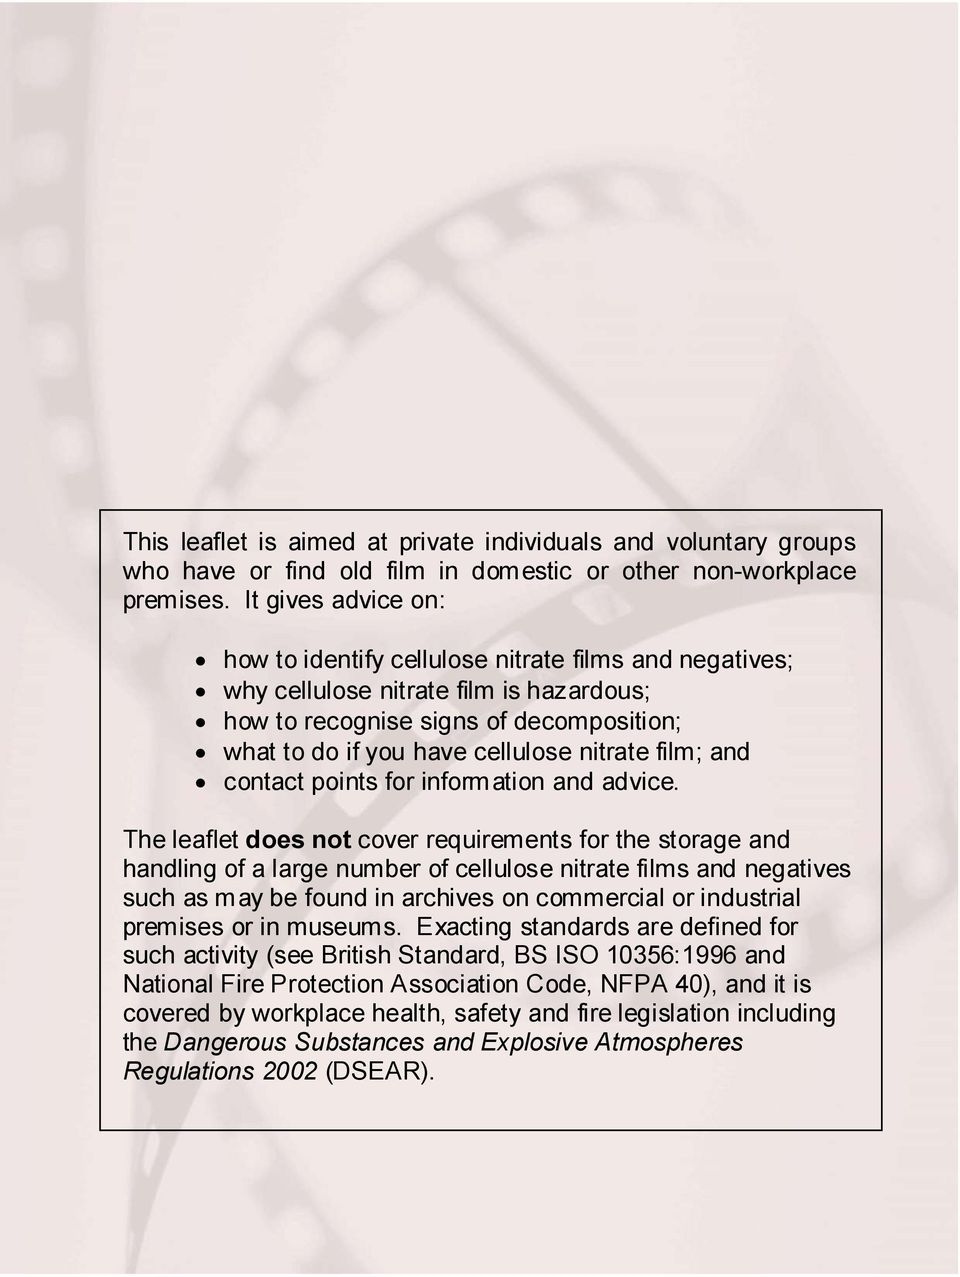 film; and contact points for information and advice.